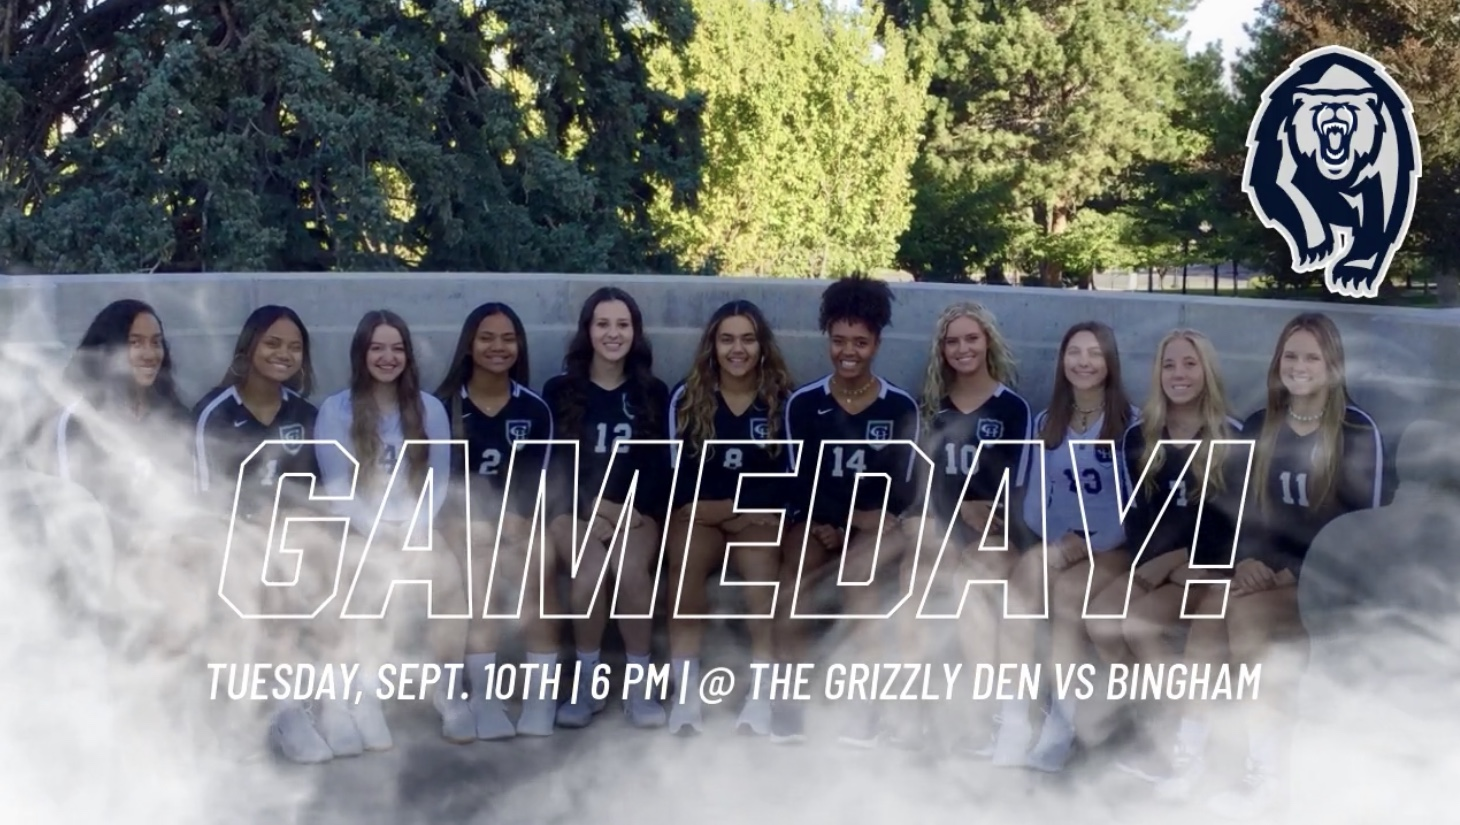 Volleyball:  Grizzlies vs Miners